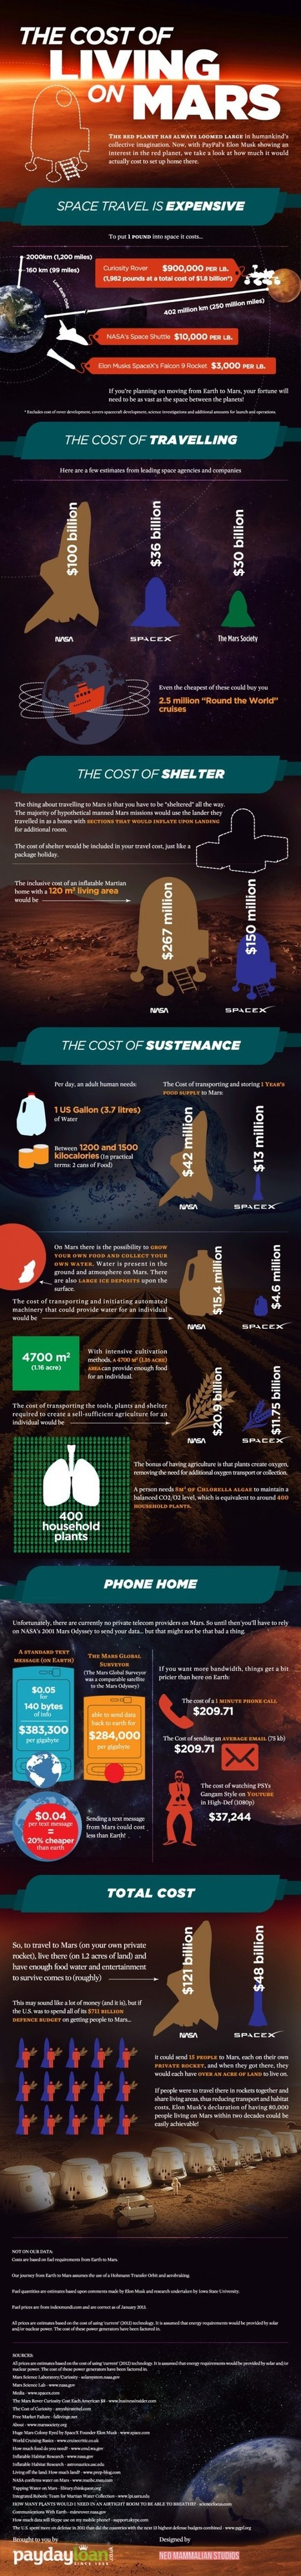 Infographic: The Cost of Living on Mars | Interesting thoughts | Scoop.it